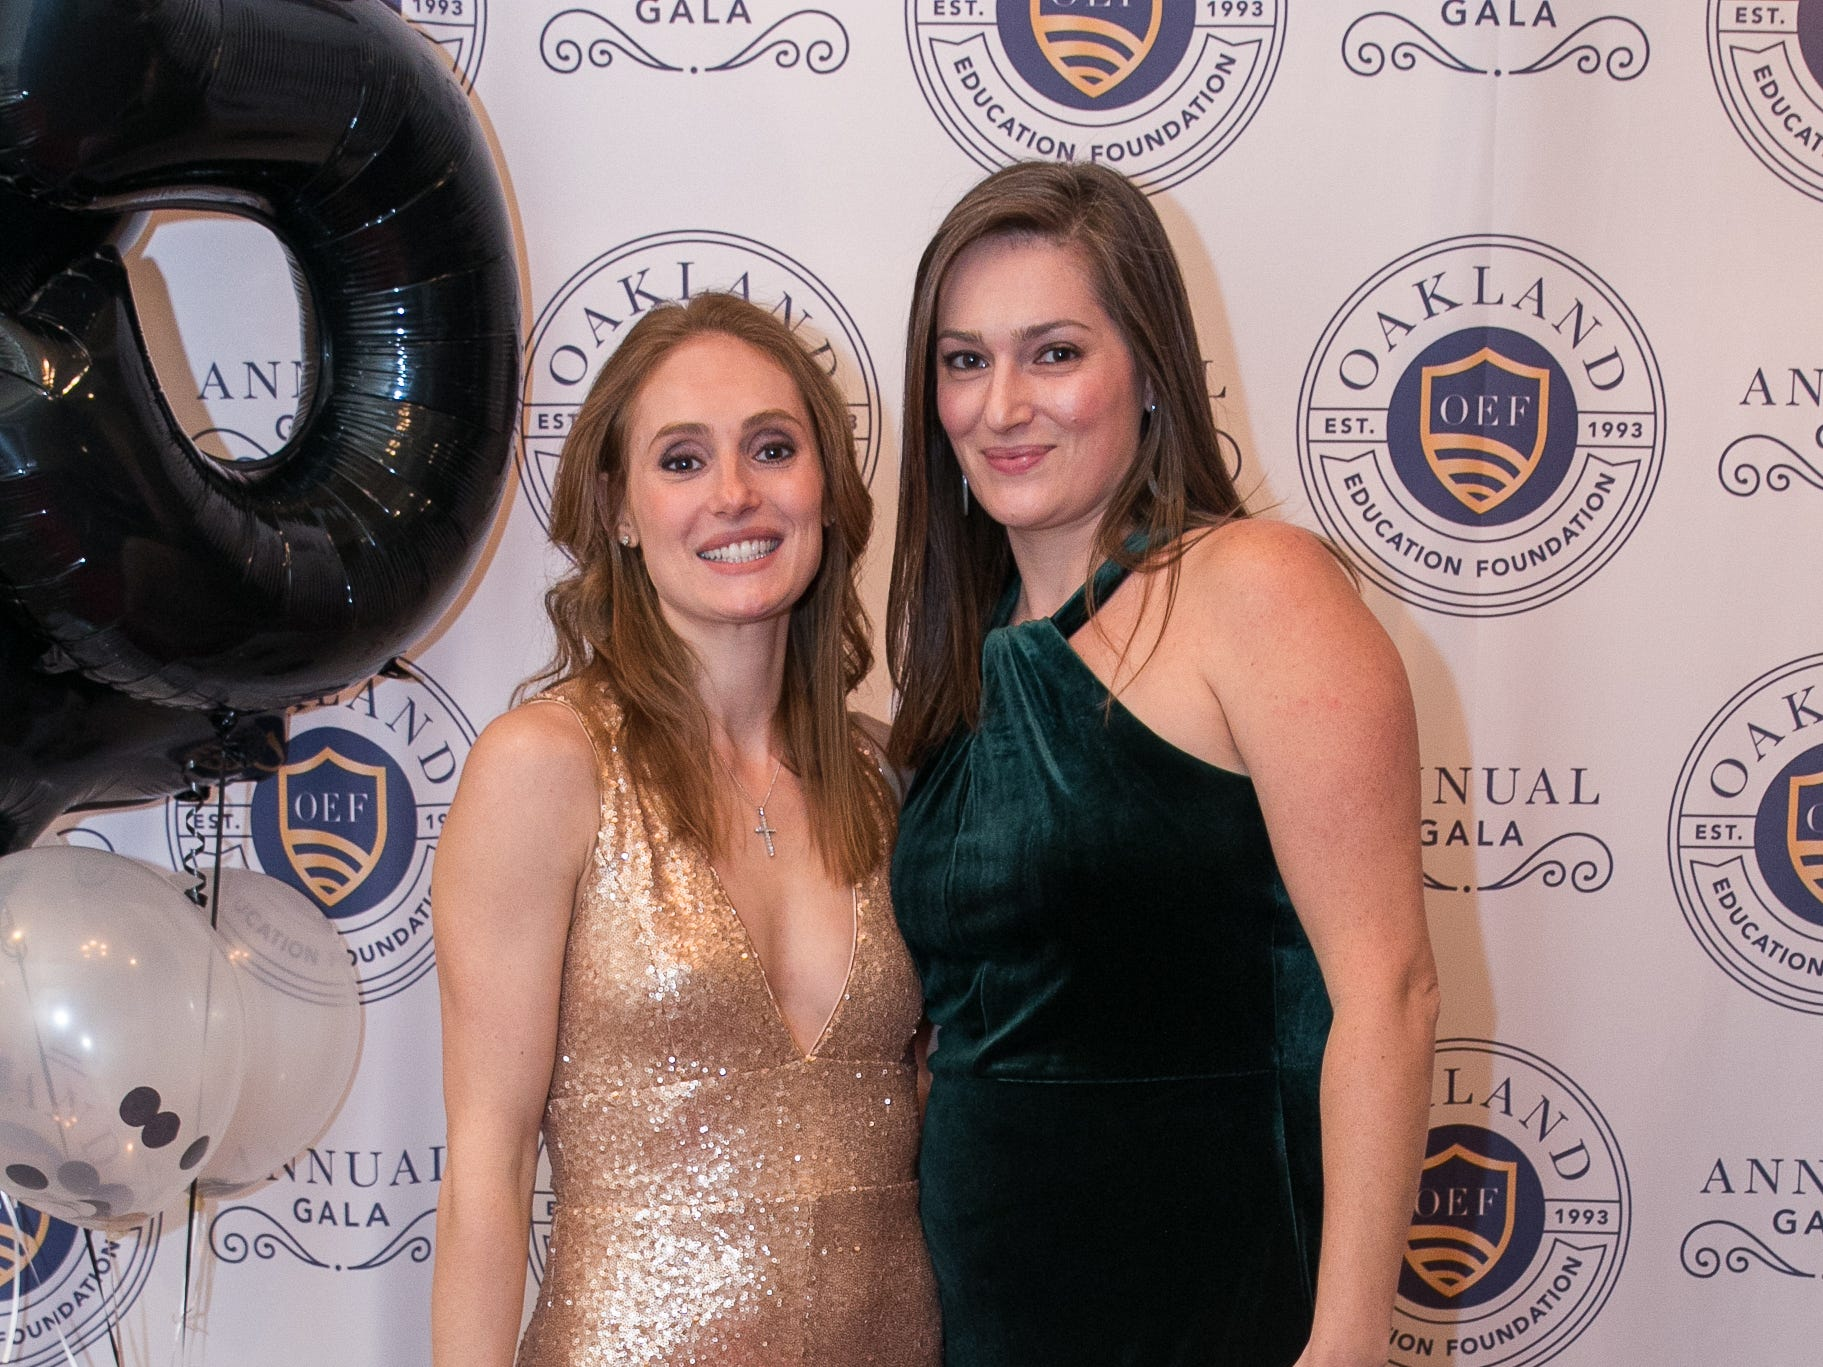 Jackie Wall, Danielle Battell. The Oakland Education Foundation held their 25th Anniversary Casino Night Gala at Preakness Hills Country Club in Wayne. 03/16/2019